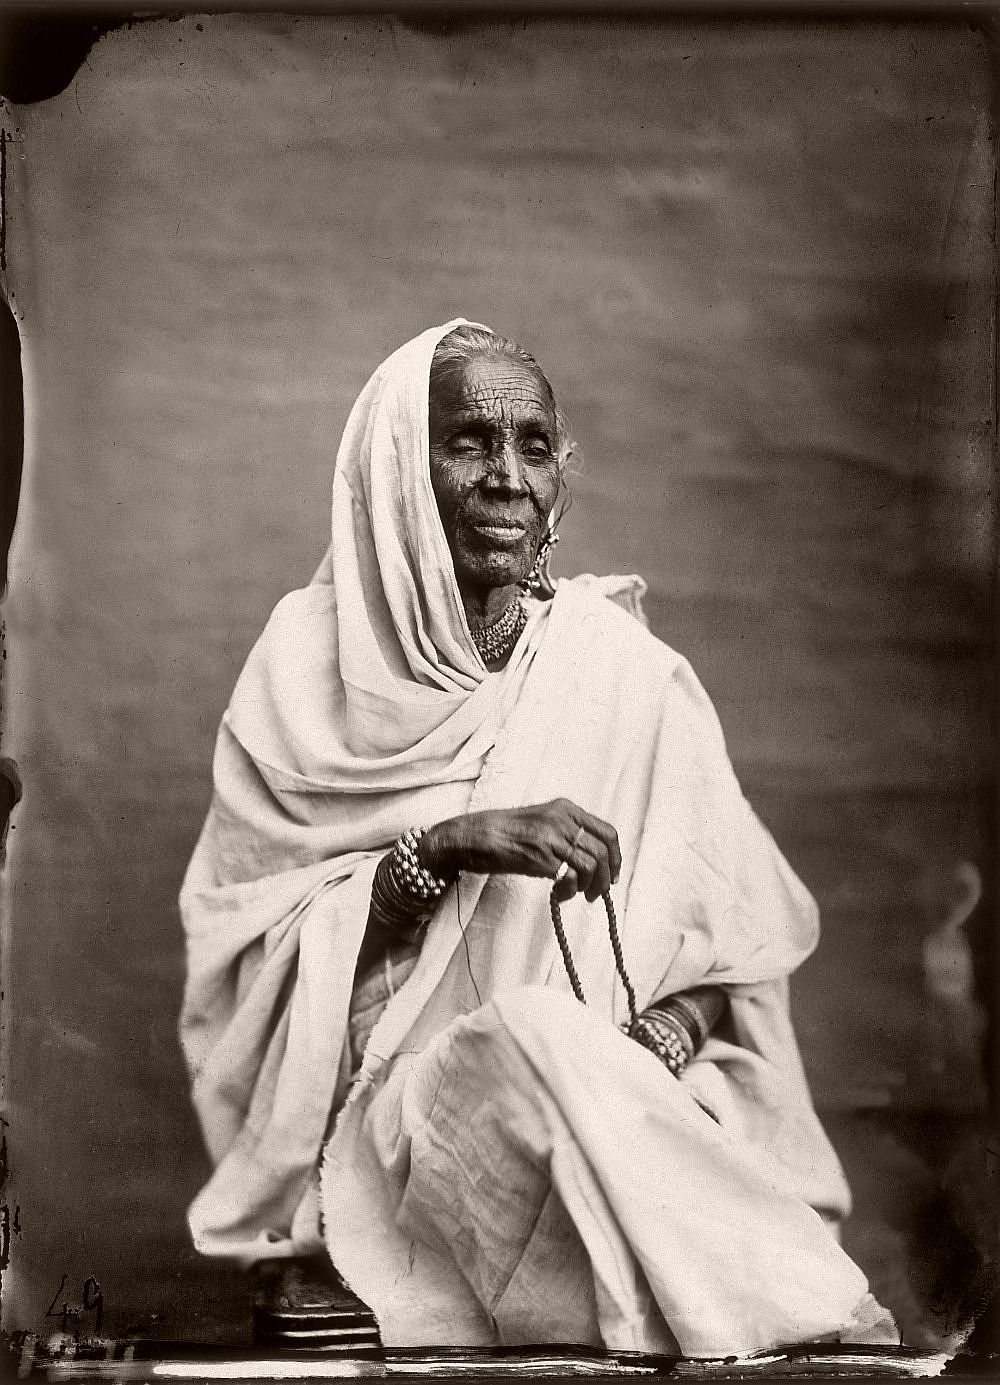 Portrait of a female supervisor of the harem in the royal palace of Jaipur, India, 1857–1865. (Photo by Maharaja Ram Singh III/Alinari via Getty Images)